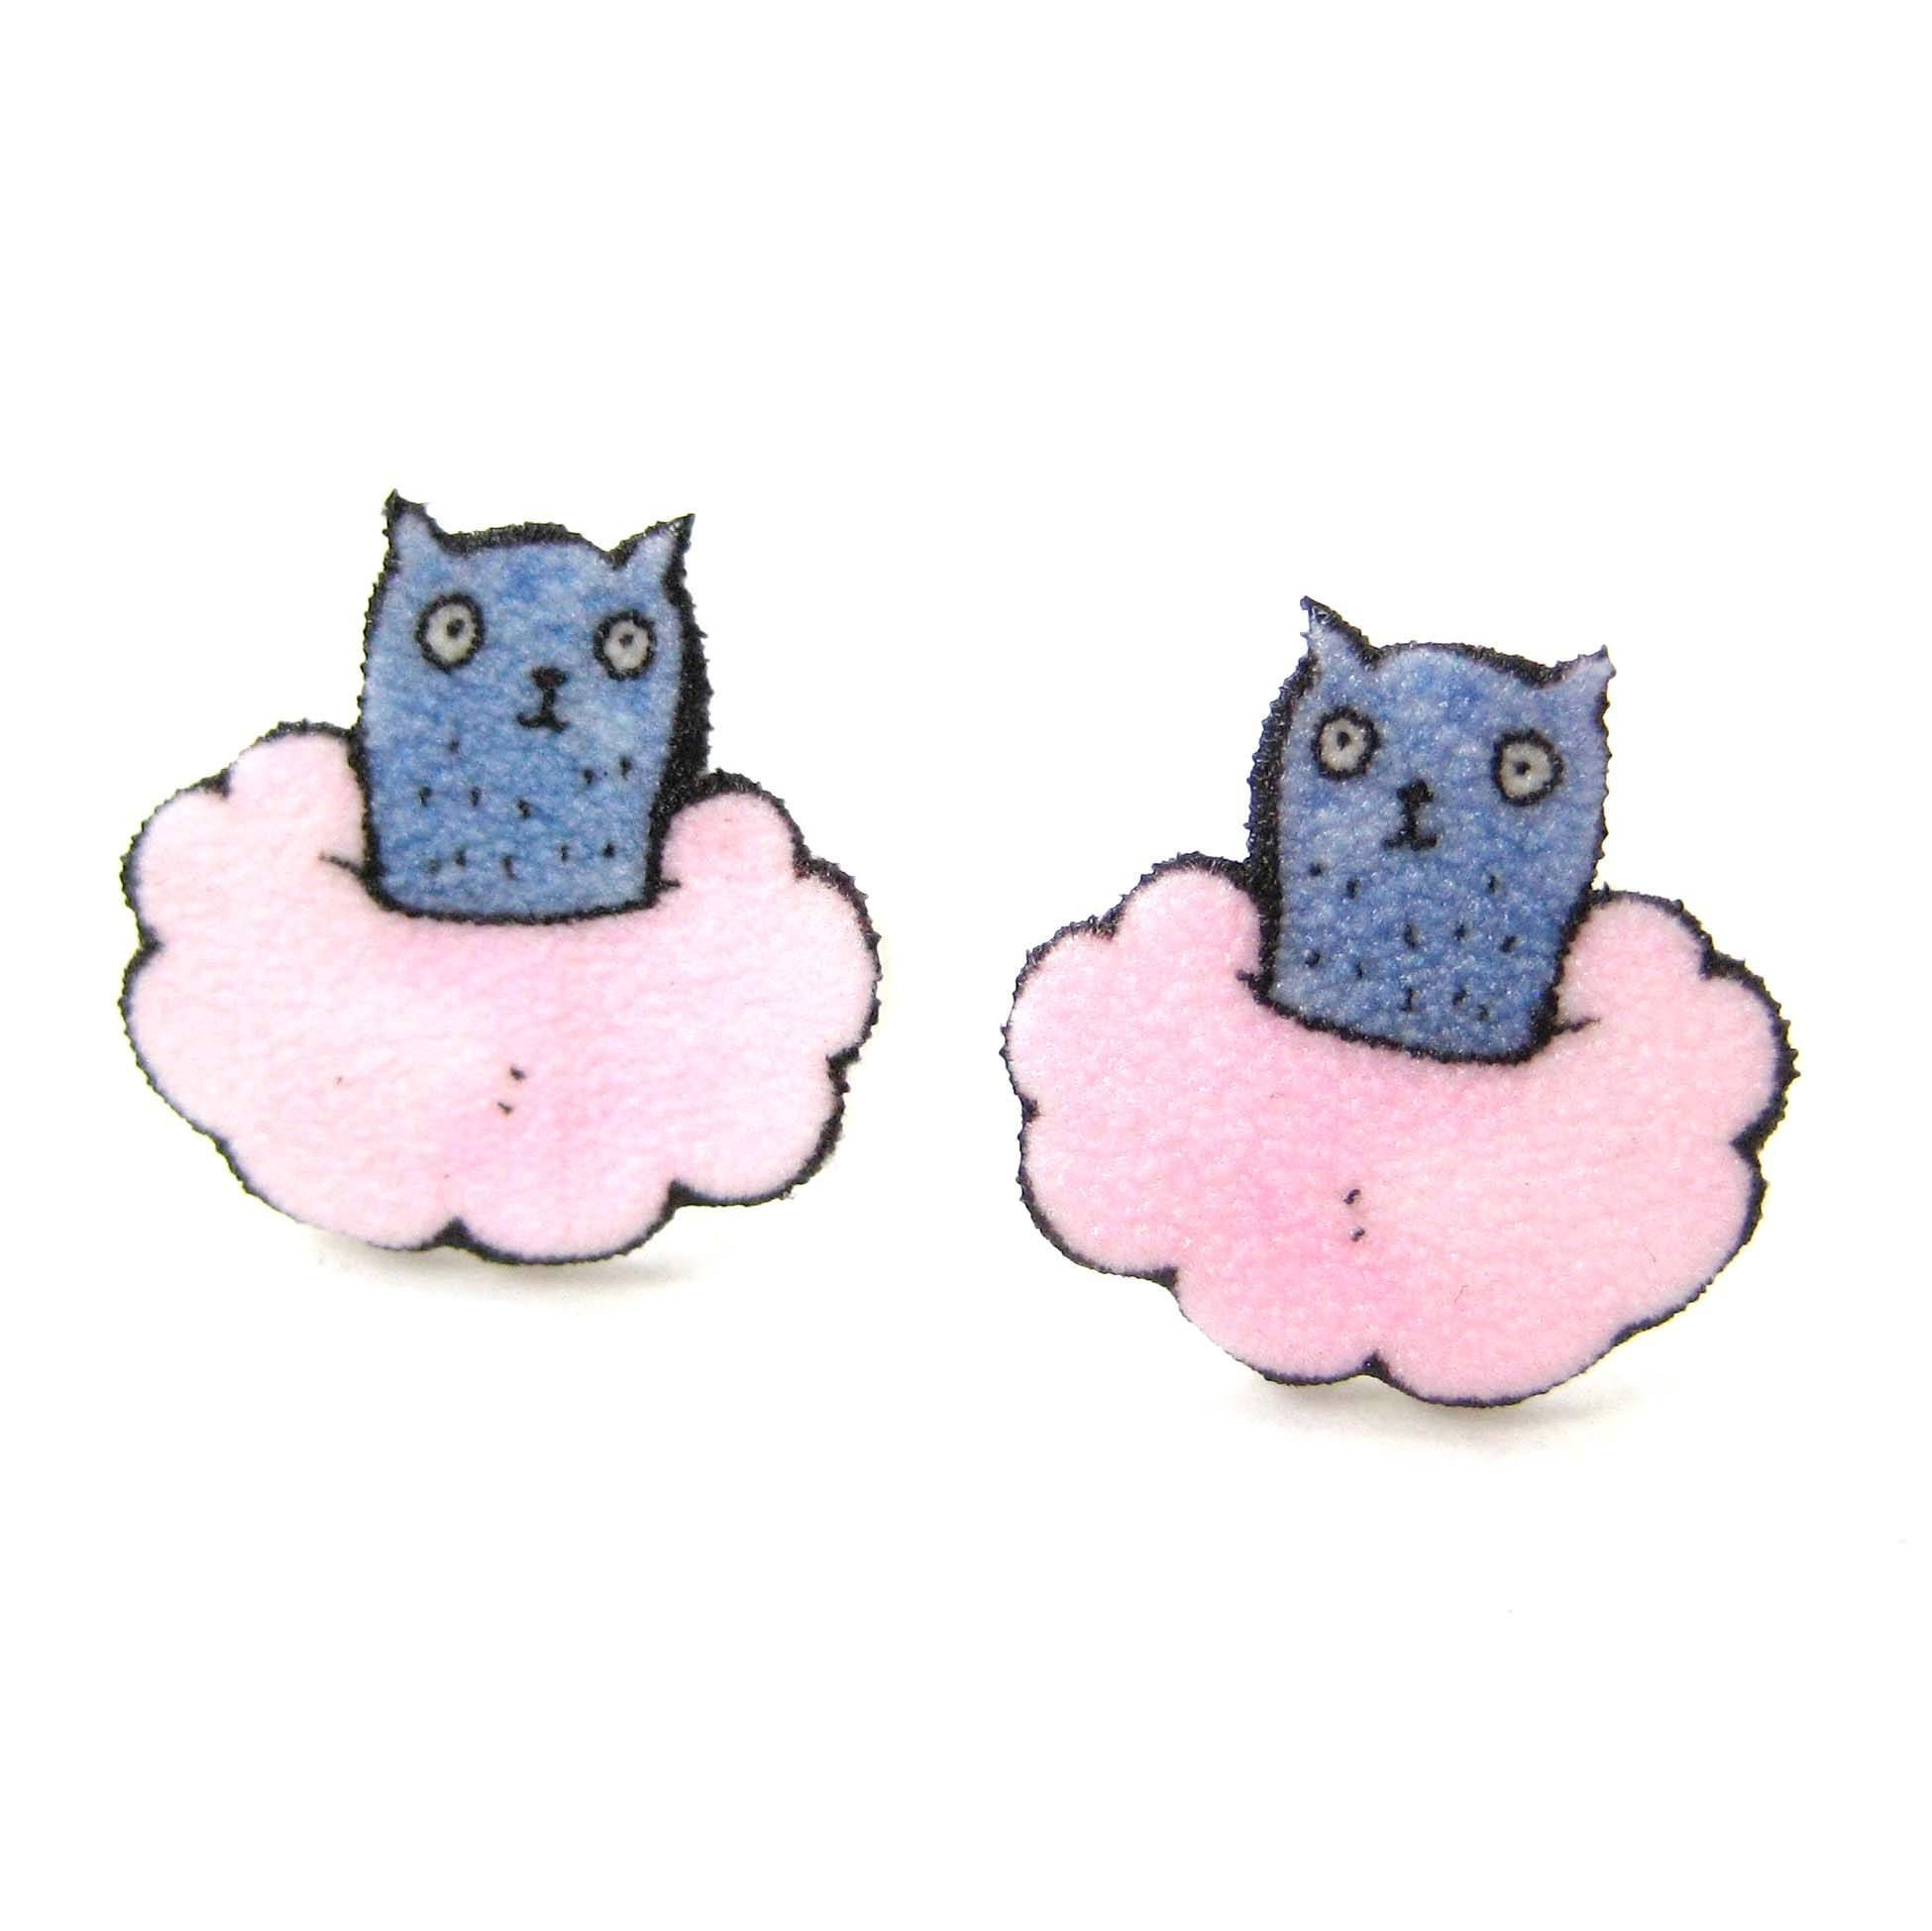 Cute Kitty Cat On A Cloud Animal Stud Earrings | Handmade Shrink Plastic